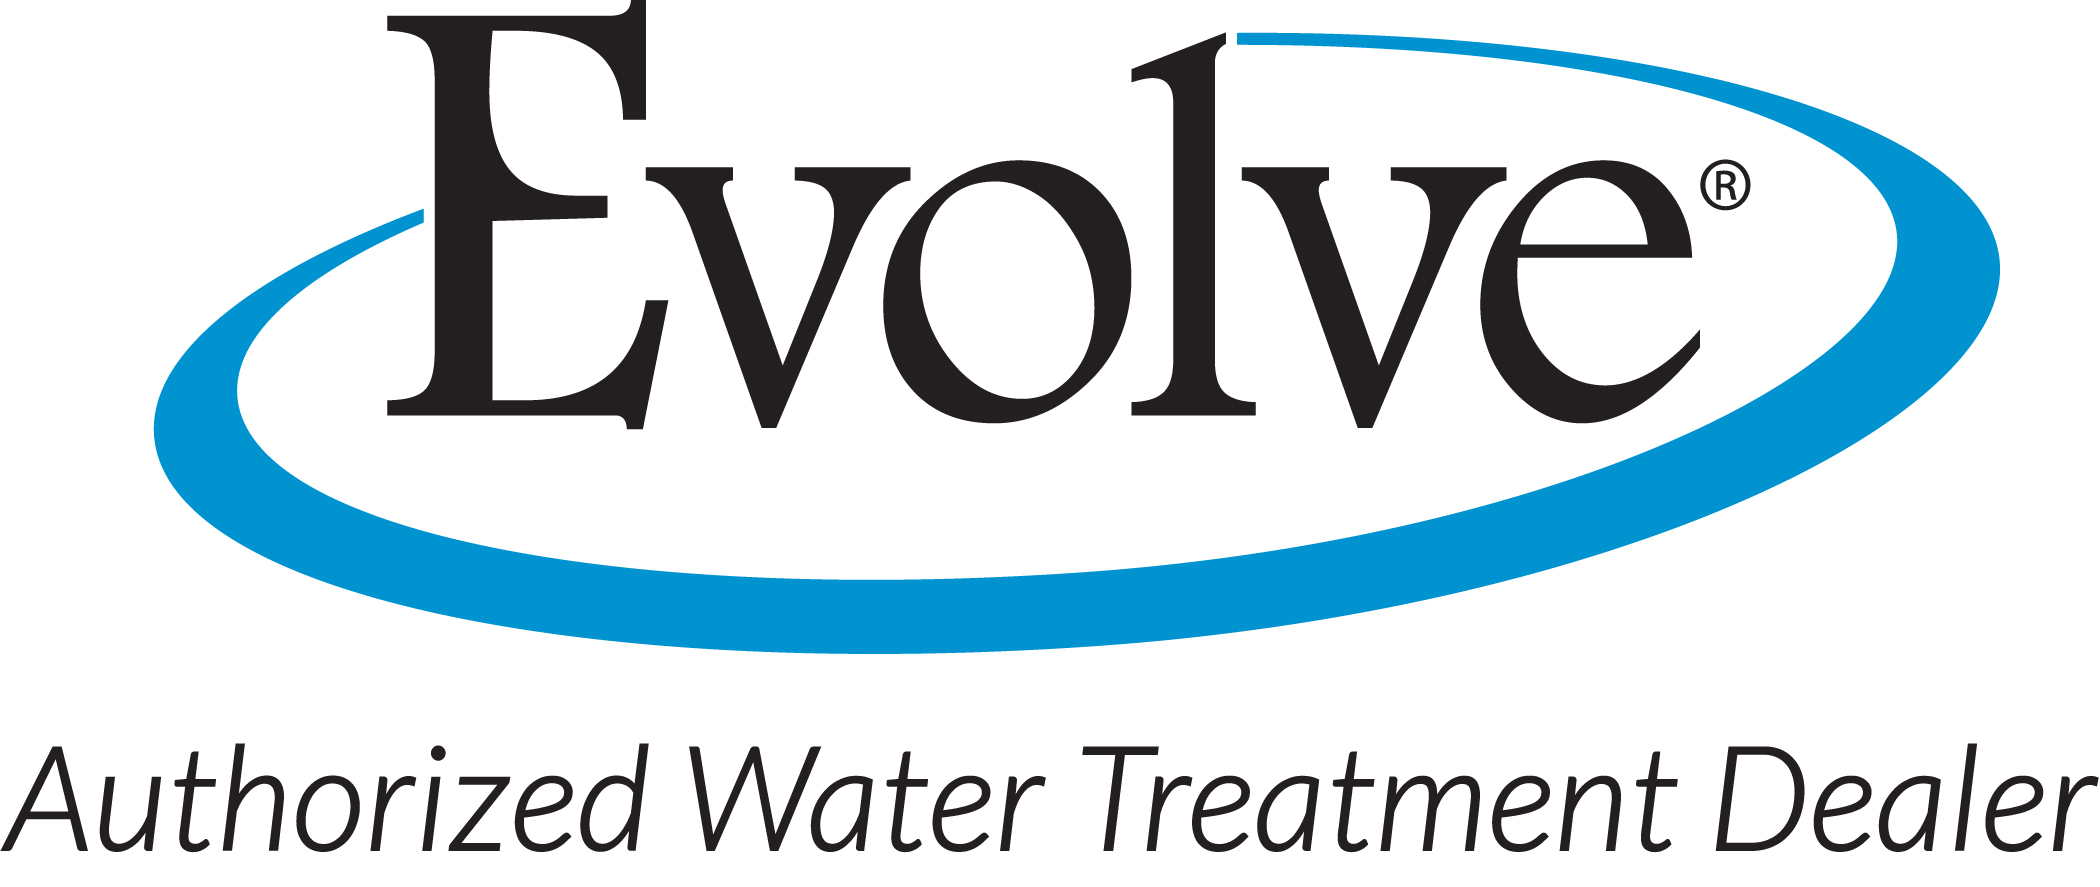 Evolve Water Treatment Equipment